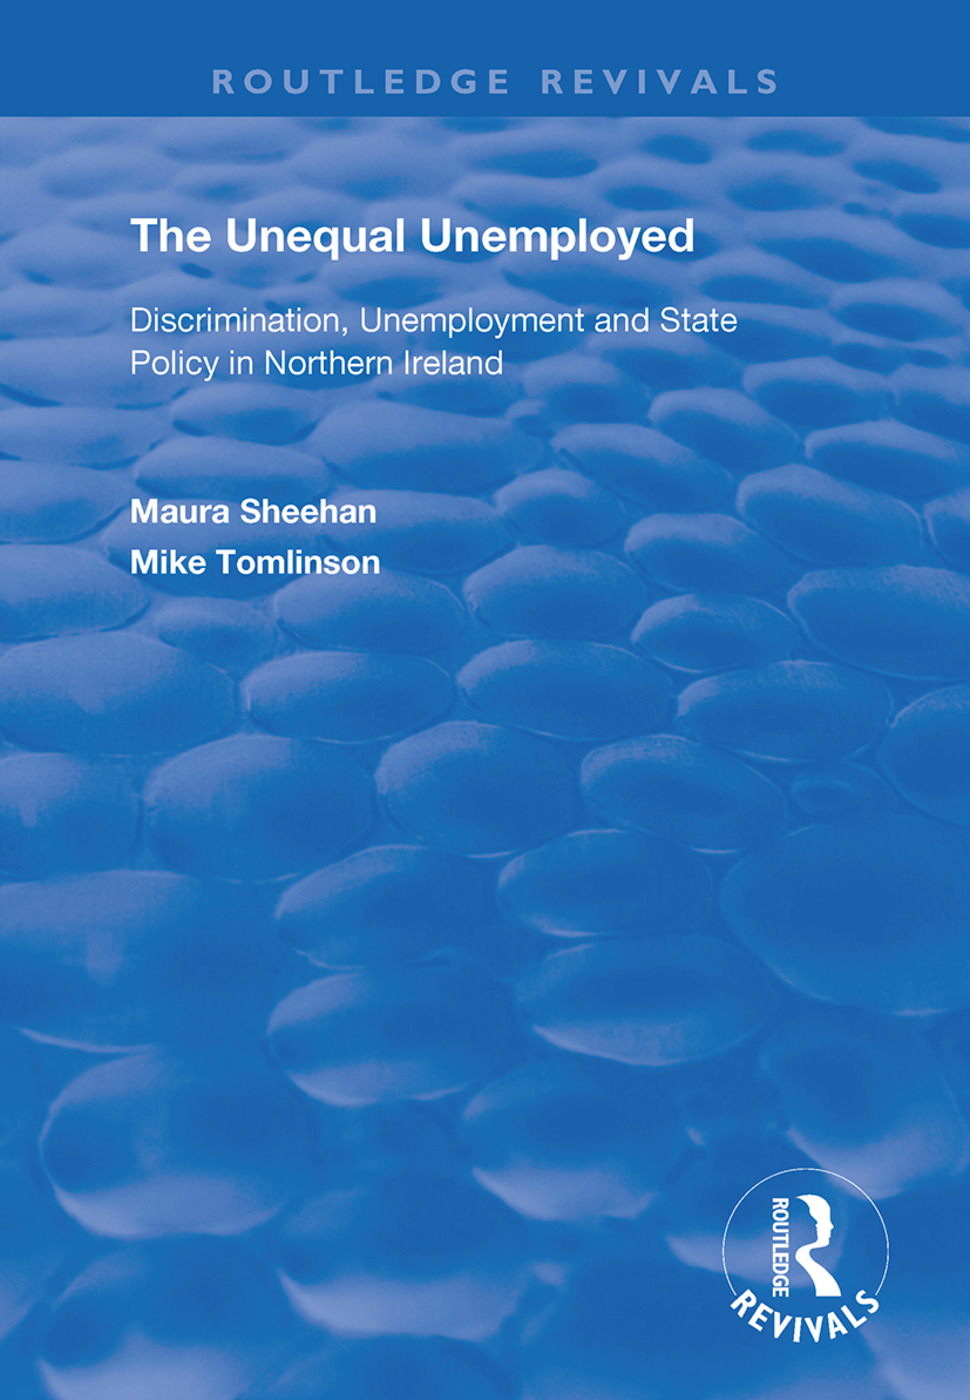 The Unequal Unemployed: Discrimination, Unemployment and State Policy in Northern Ireland book cover